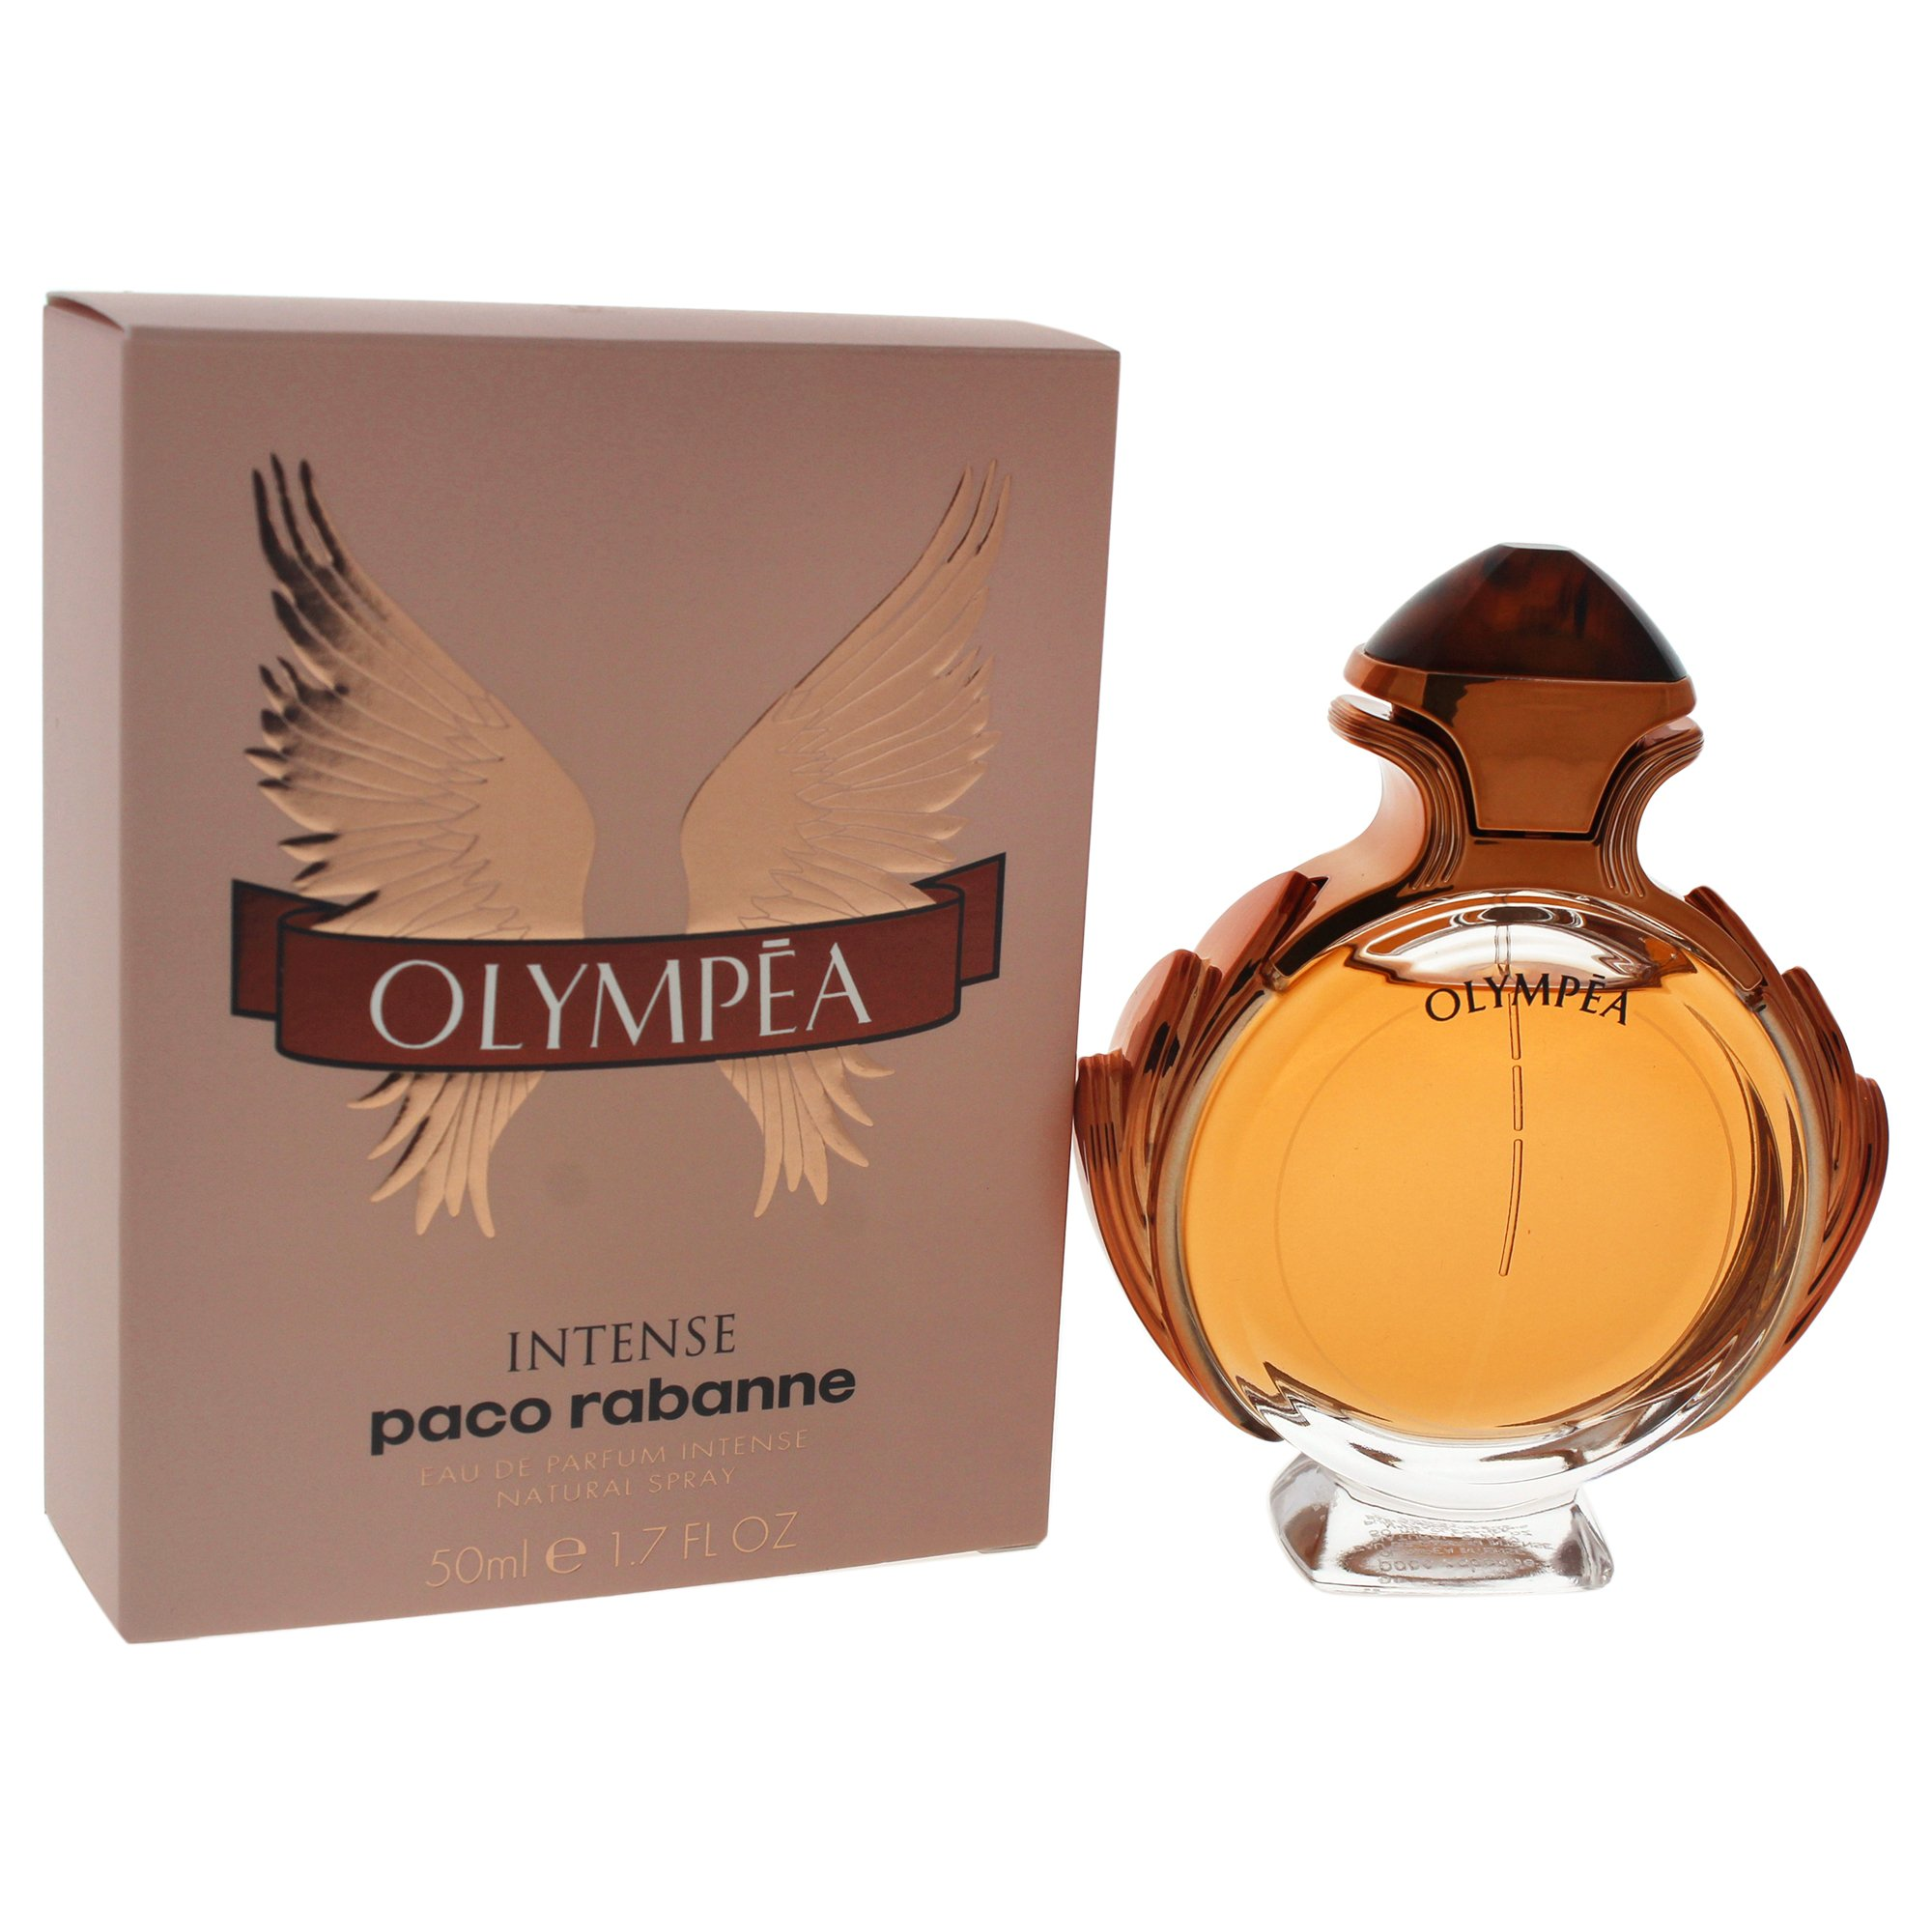 Paco Rabanne Olympia Intense Eau De Parfum Spray for Women, 1.7 Ounce by Paco Rabanne (Image #1)